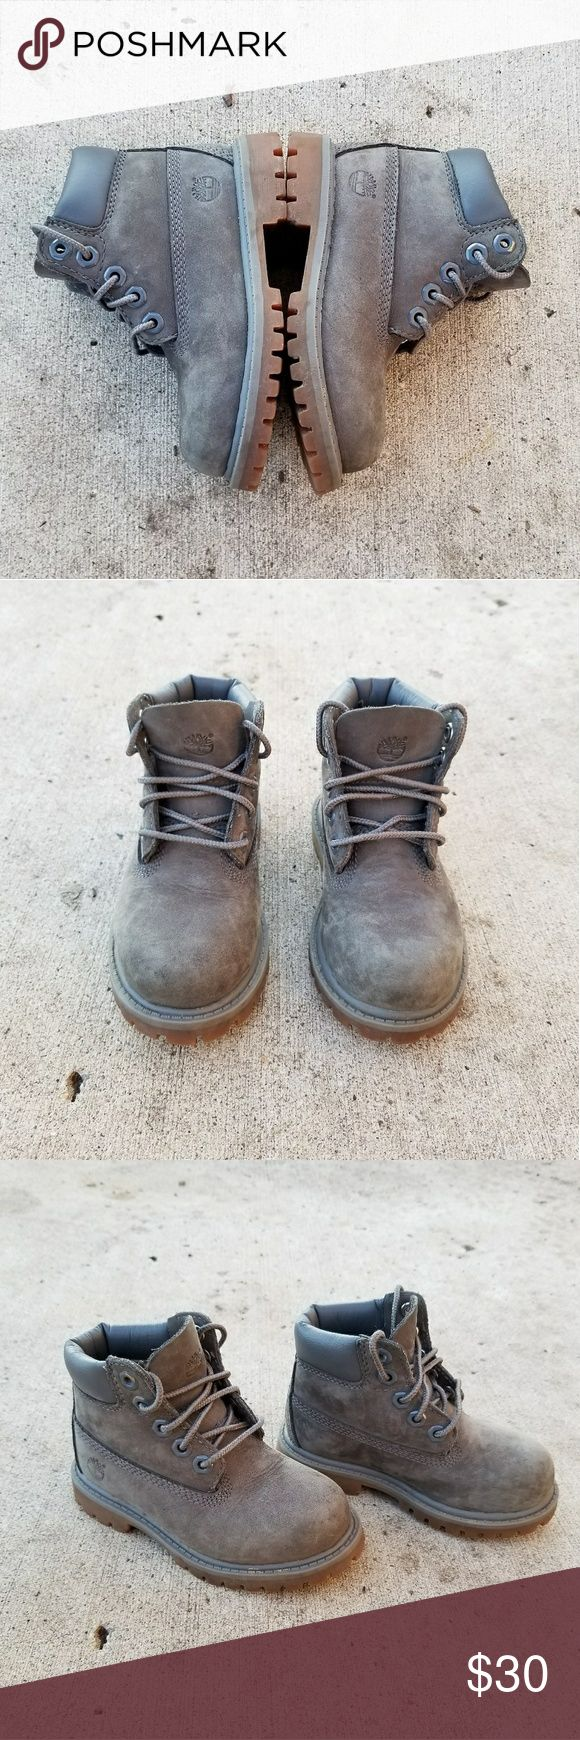 |Timberland| Gray Suede Shoes These gorgeous toddler timbs feature a velvety, suede material & they are in GUC/EUC. A perfect neutral to match any outfit for your little hipster. Unnoticable scuffing on tips of shoes pictured as is common with this brand. Crossposted on other selling sites 🖤 Timberland Shoes Boots